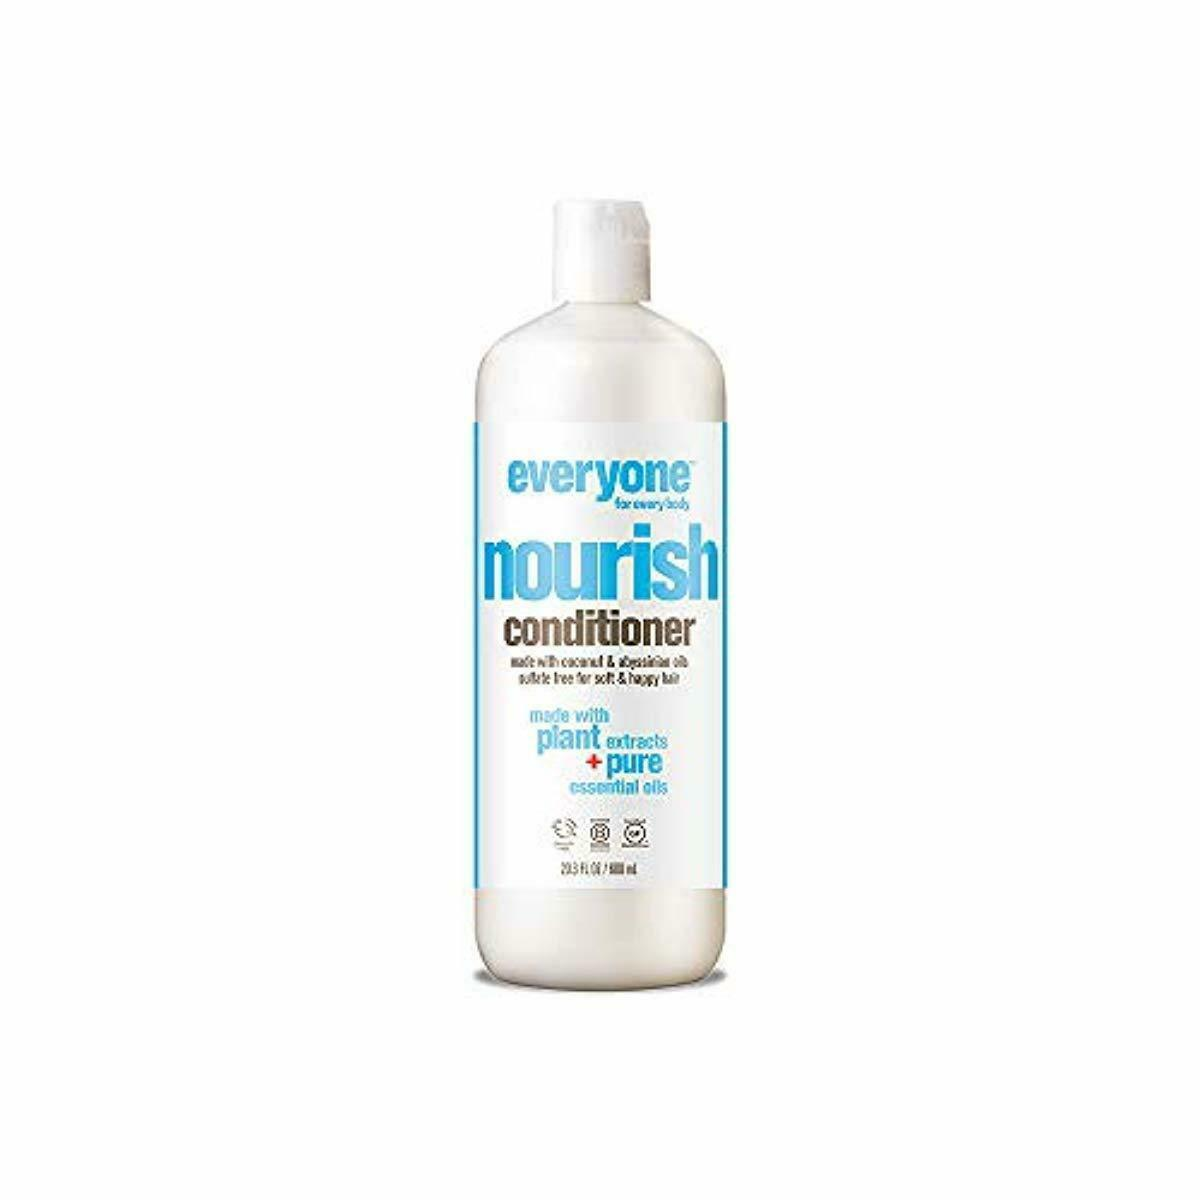 Primary image for Everyone Sulfate-Free Hair Conditioner, Nourish, 20.3 Ounce